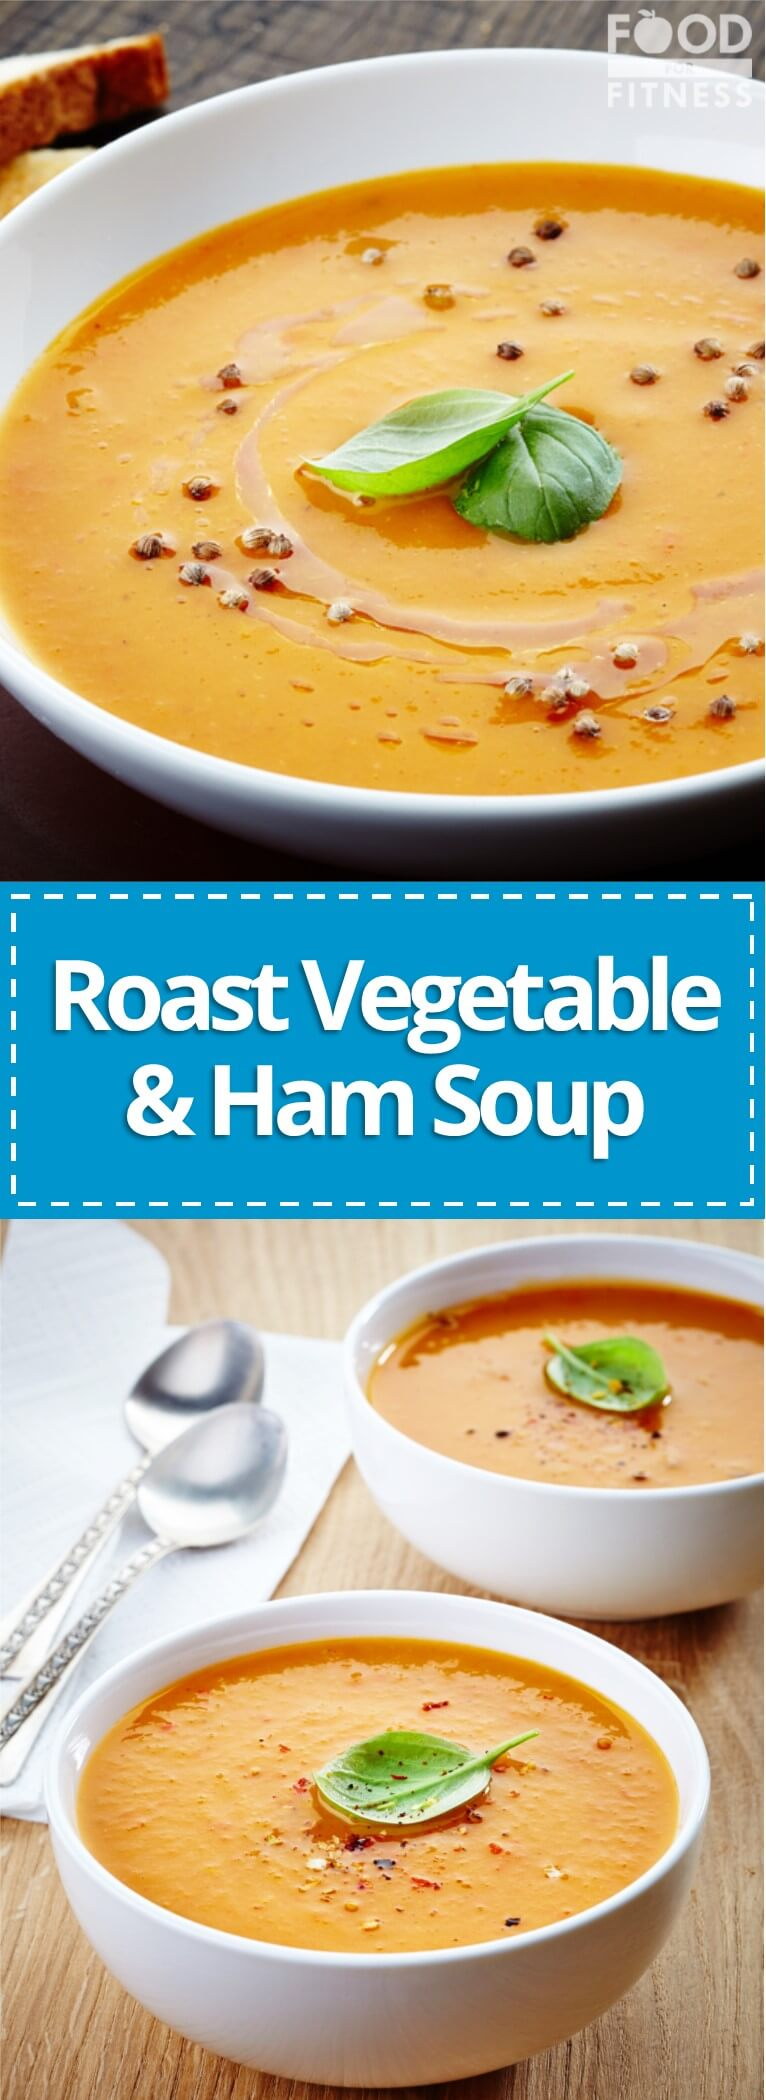 Roast vegetable and ham soup recipe